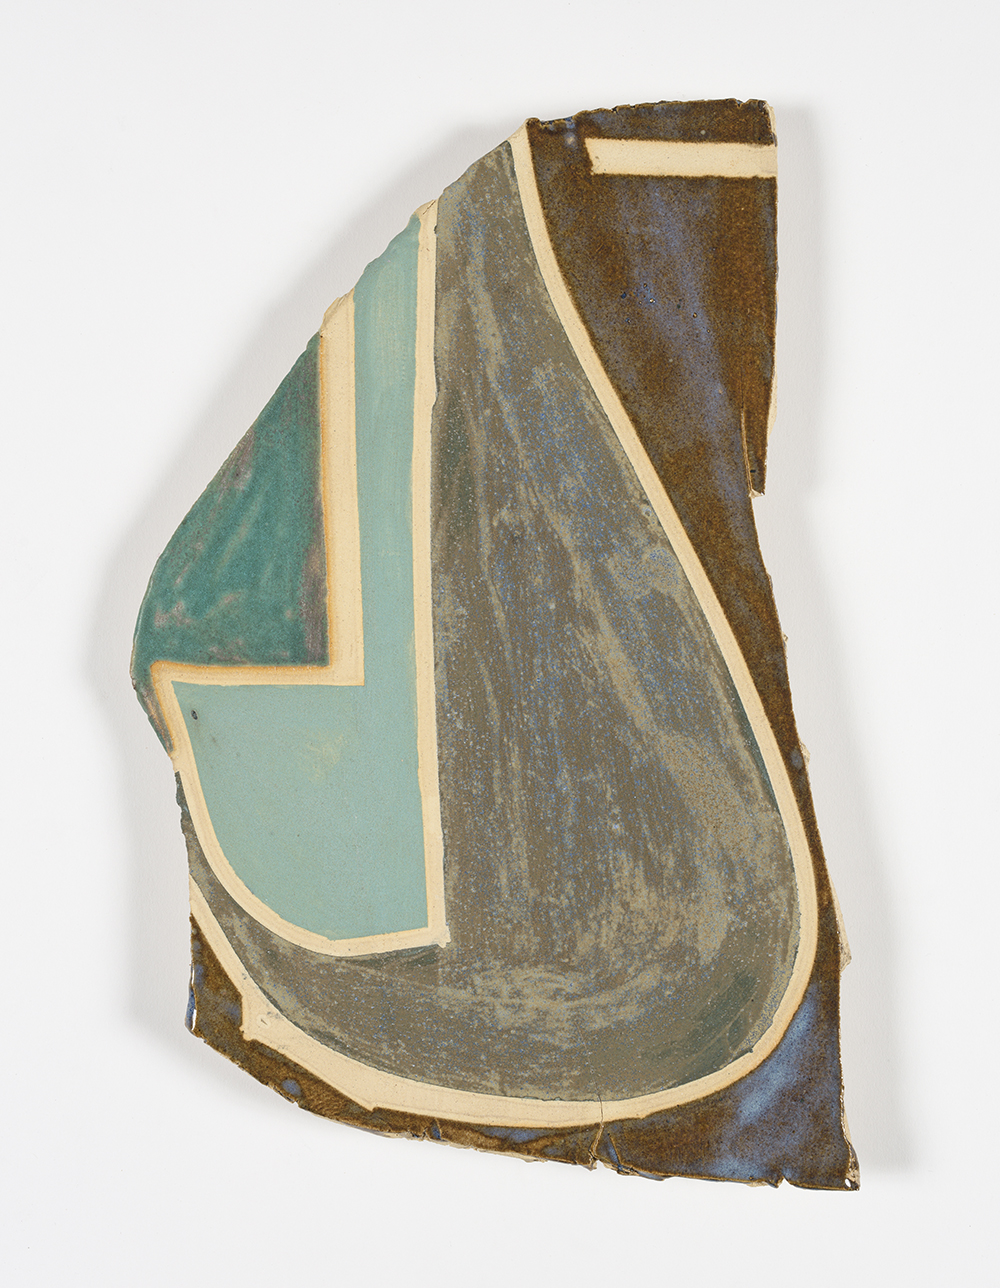 Kevin McNamee-Tweed.<em> Untitled</em>, 2019. Glazed ceramic, 14 x 10 inches (35.6 x 25.4 cm)